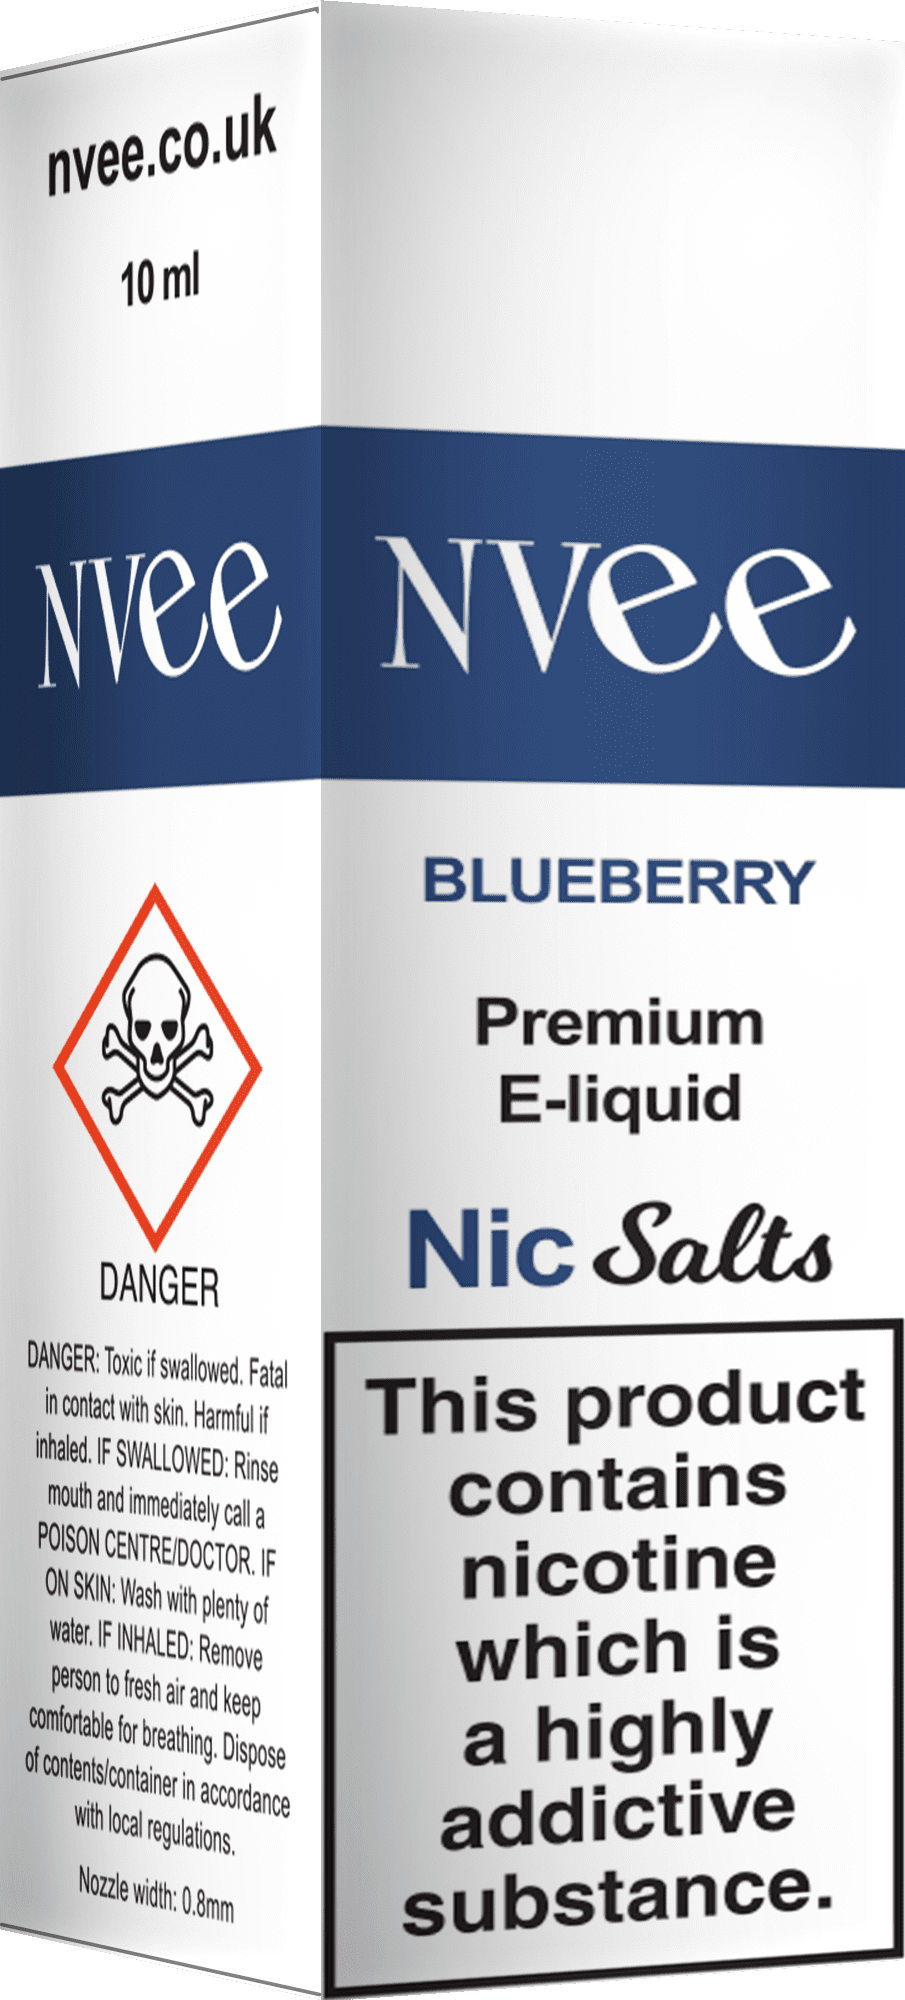 Buy Blueberry nvee